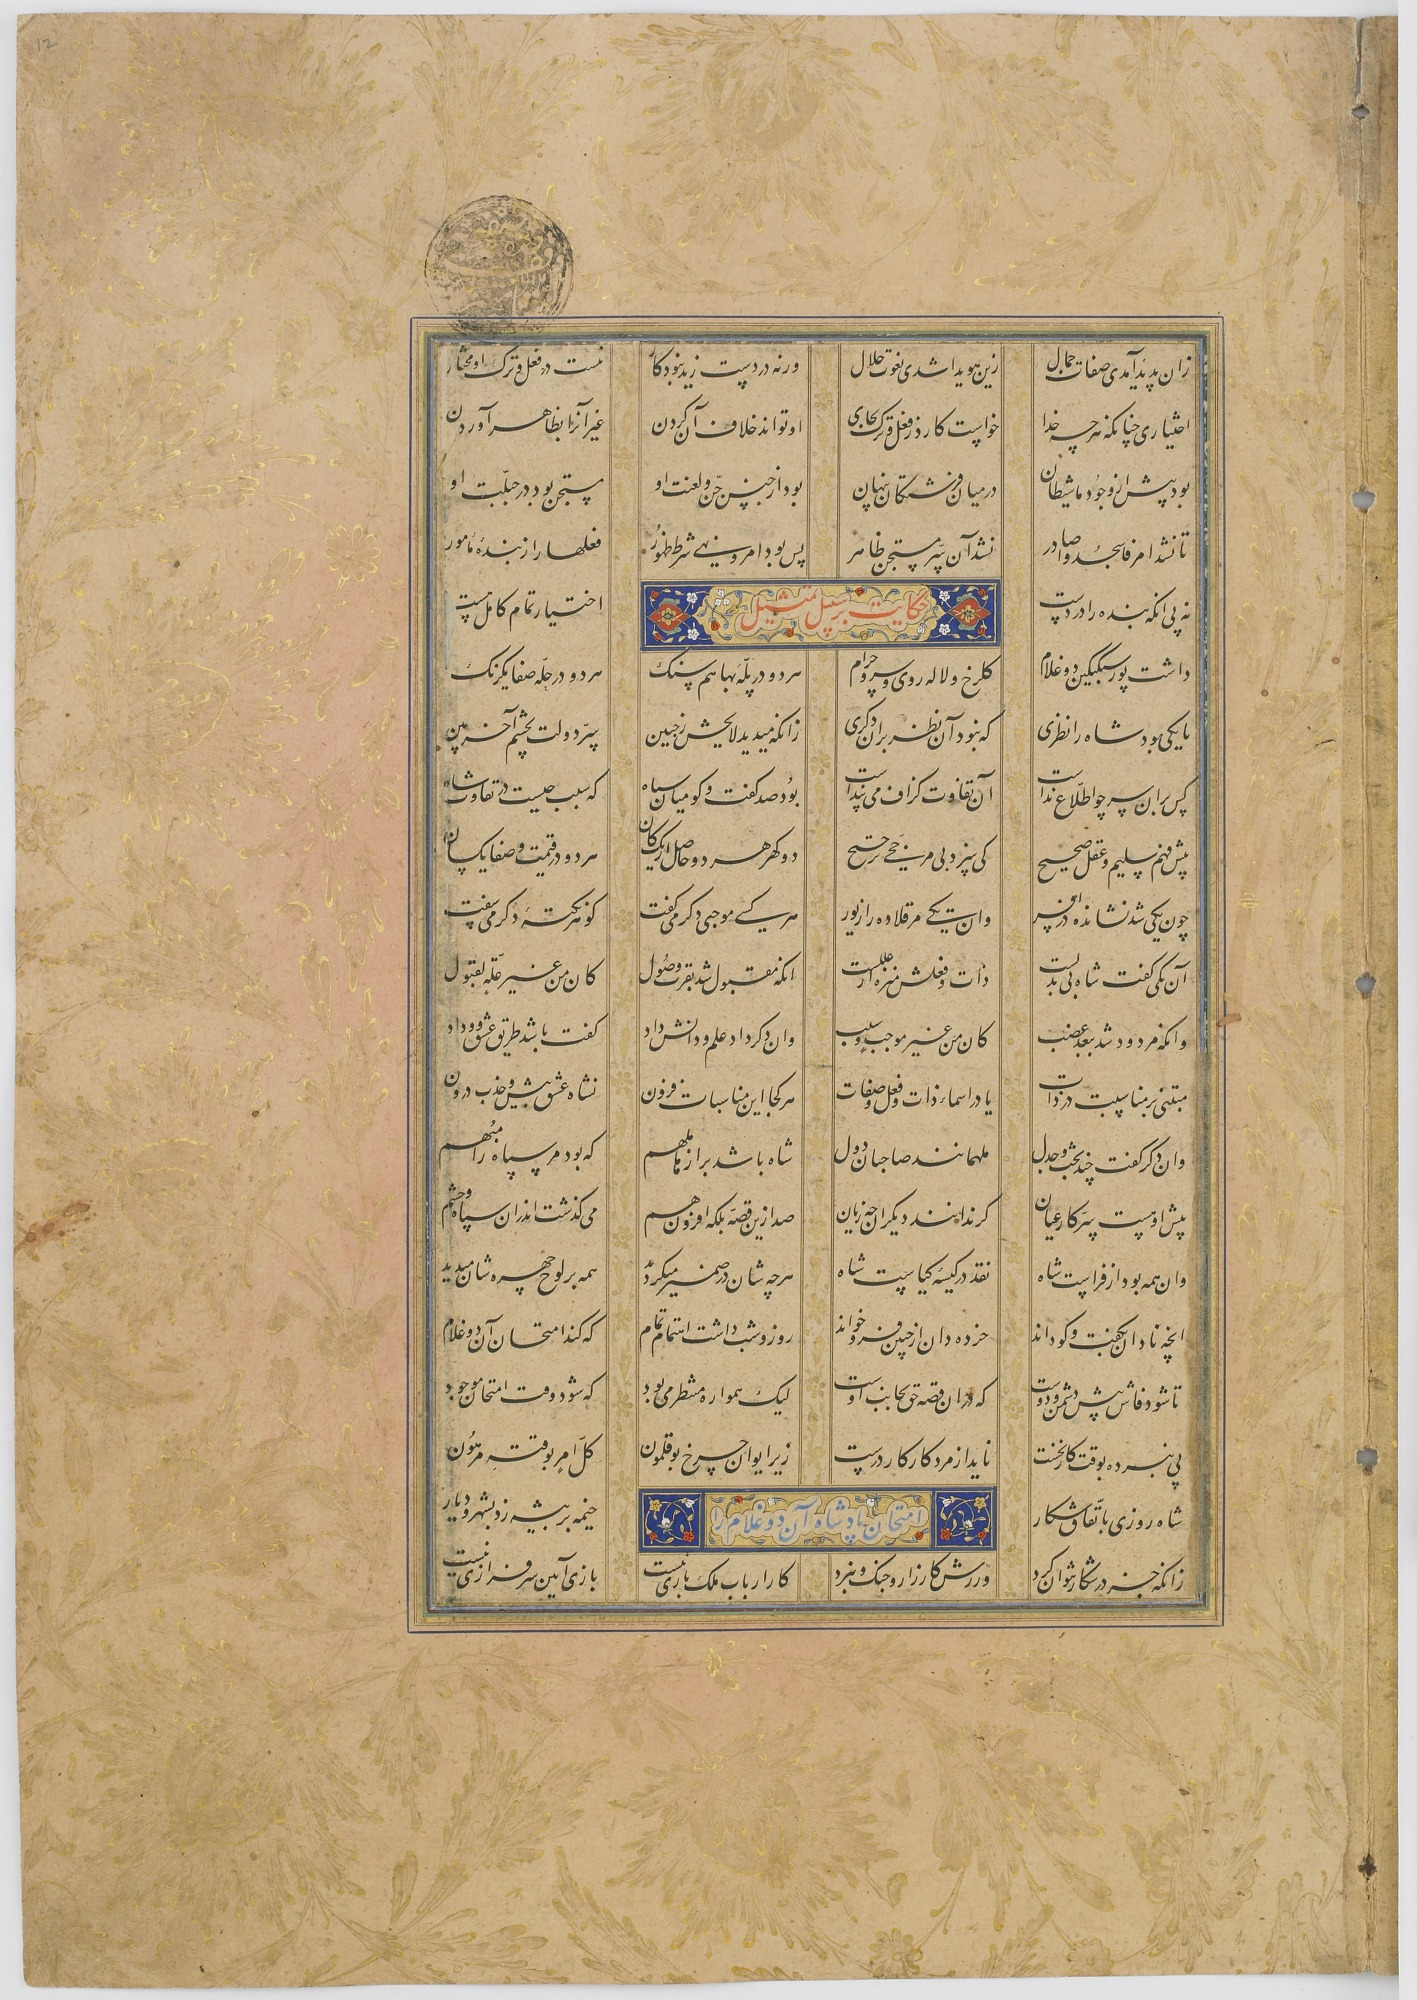 Folio from the Silsilat al-dhahab (Chain of gold) in the Haft awrang (Seven thrones) by Jami (d.1492)